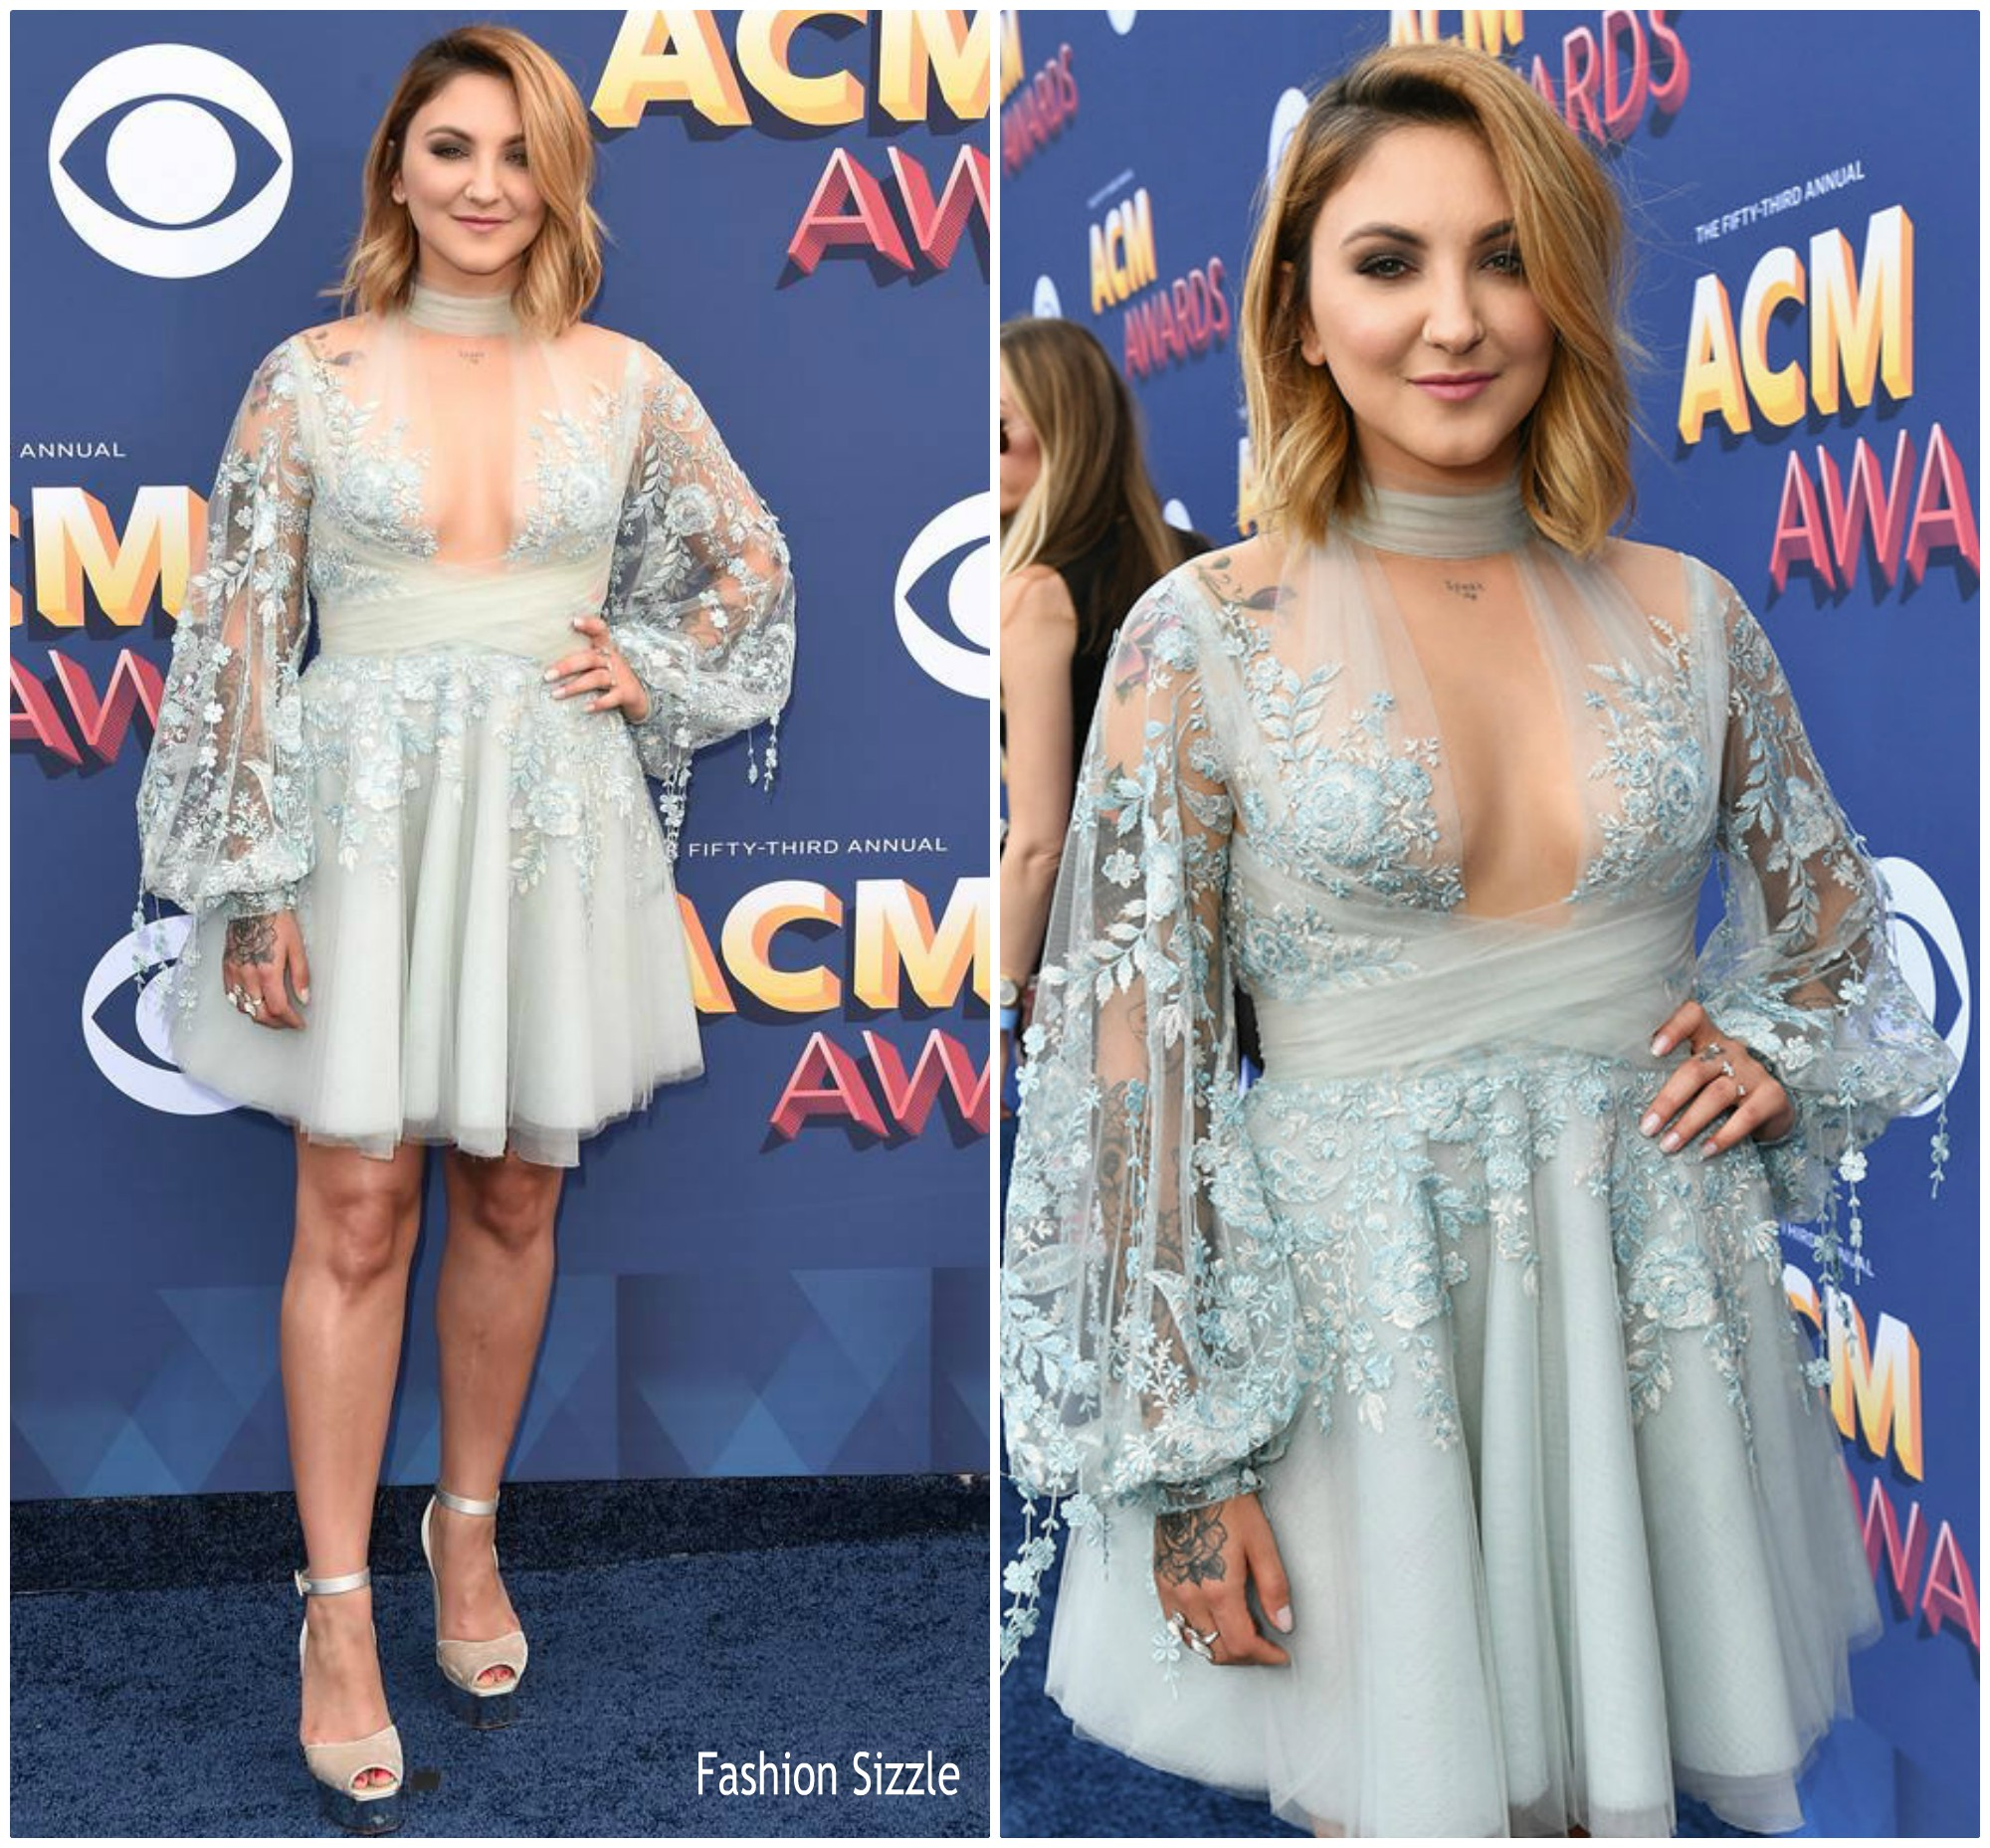 julia-michaels-in-paolo-sebastian-couture-2018-acm-awards